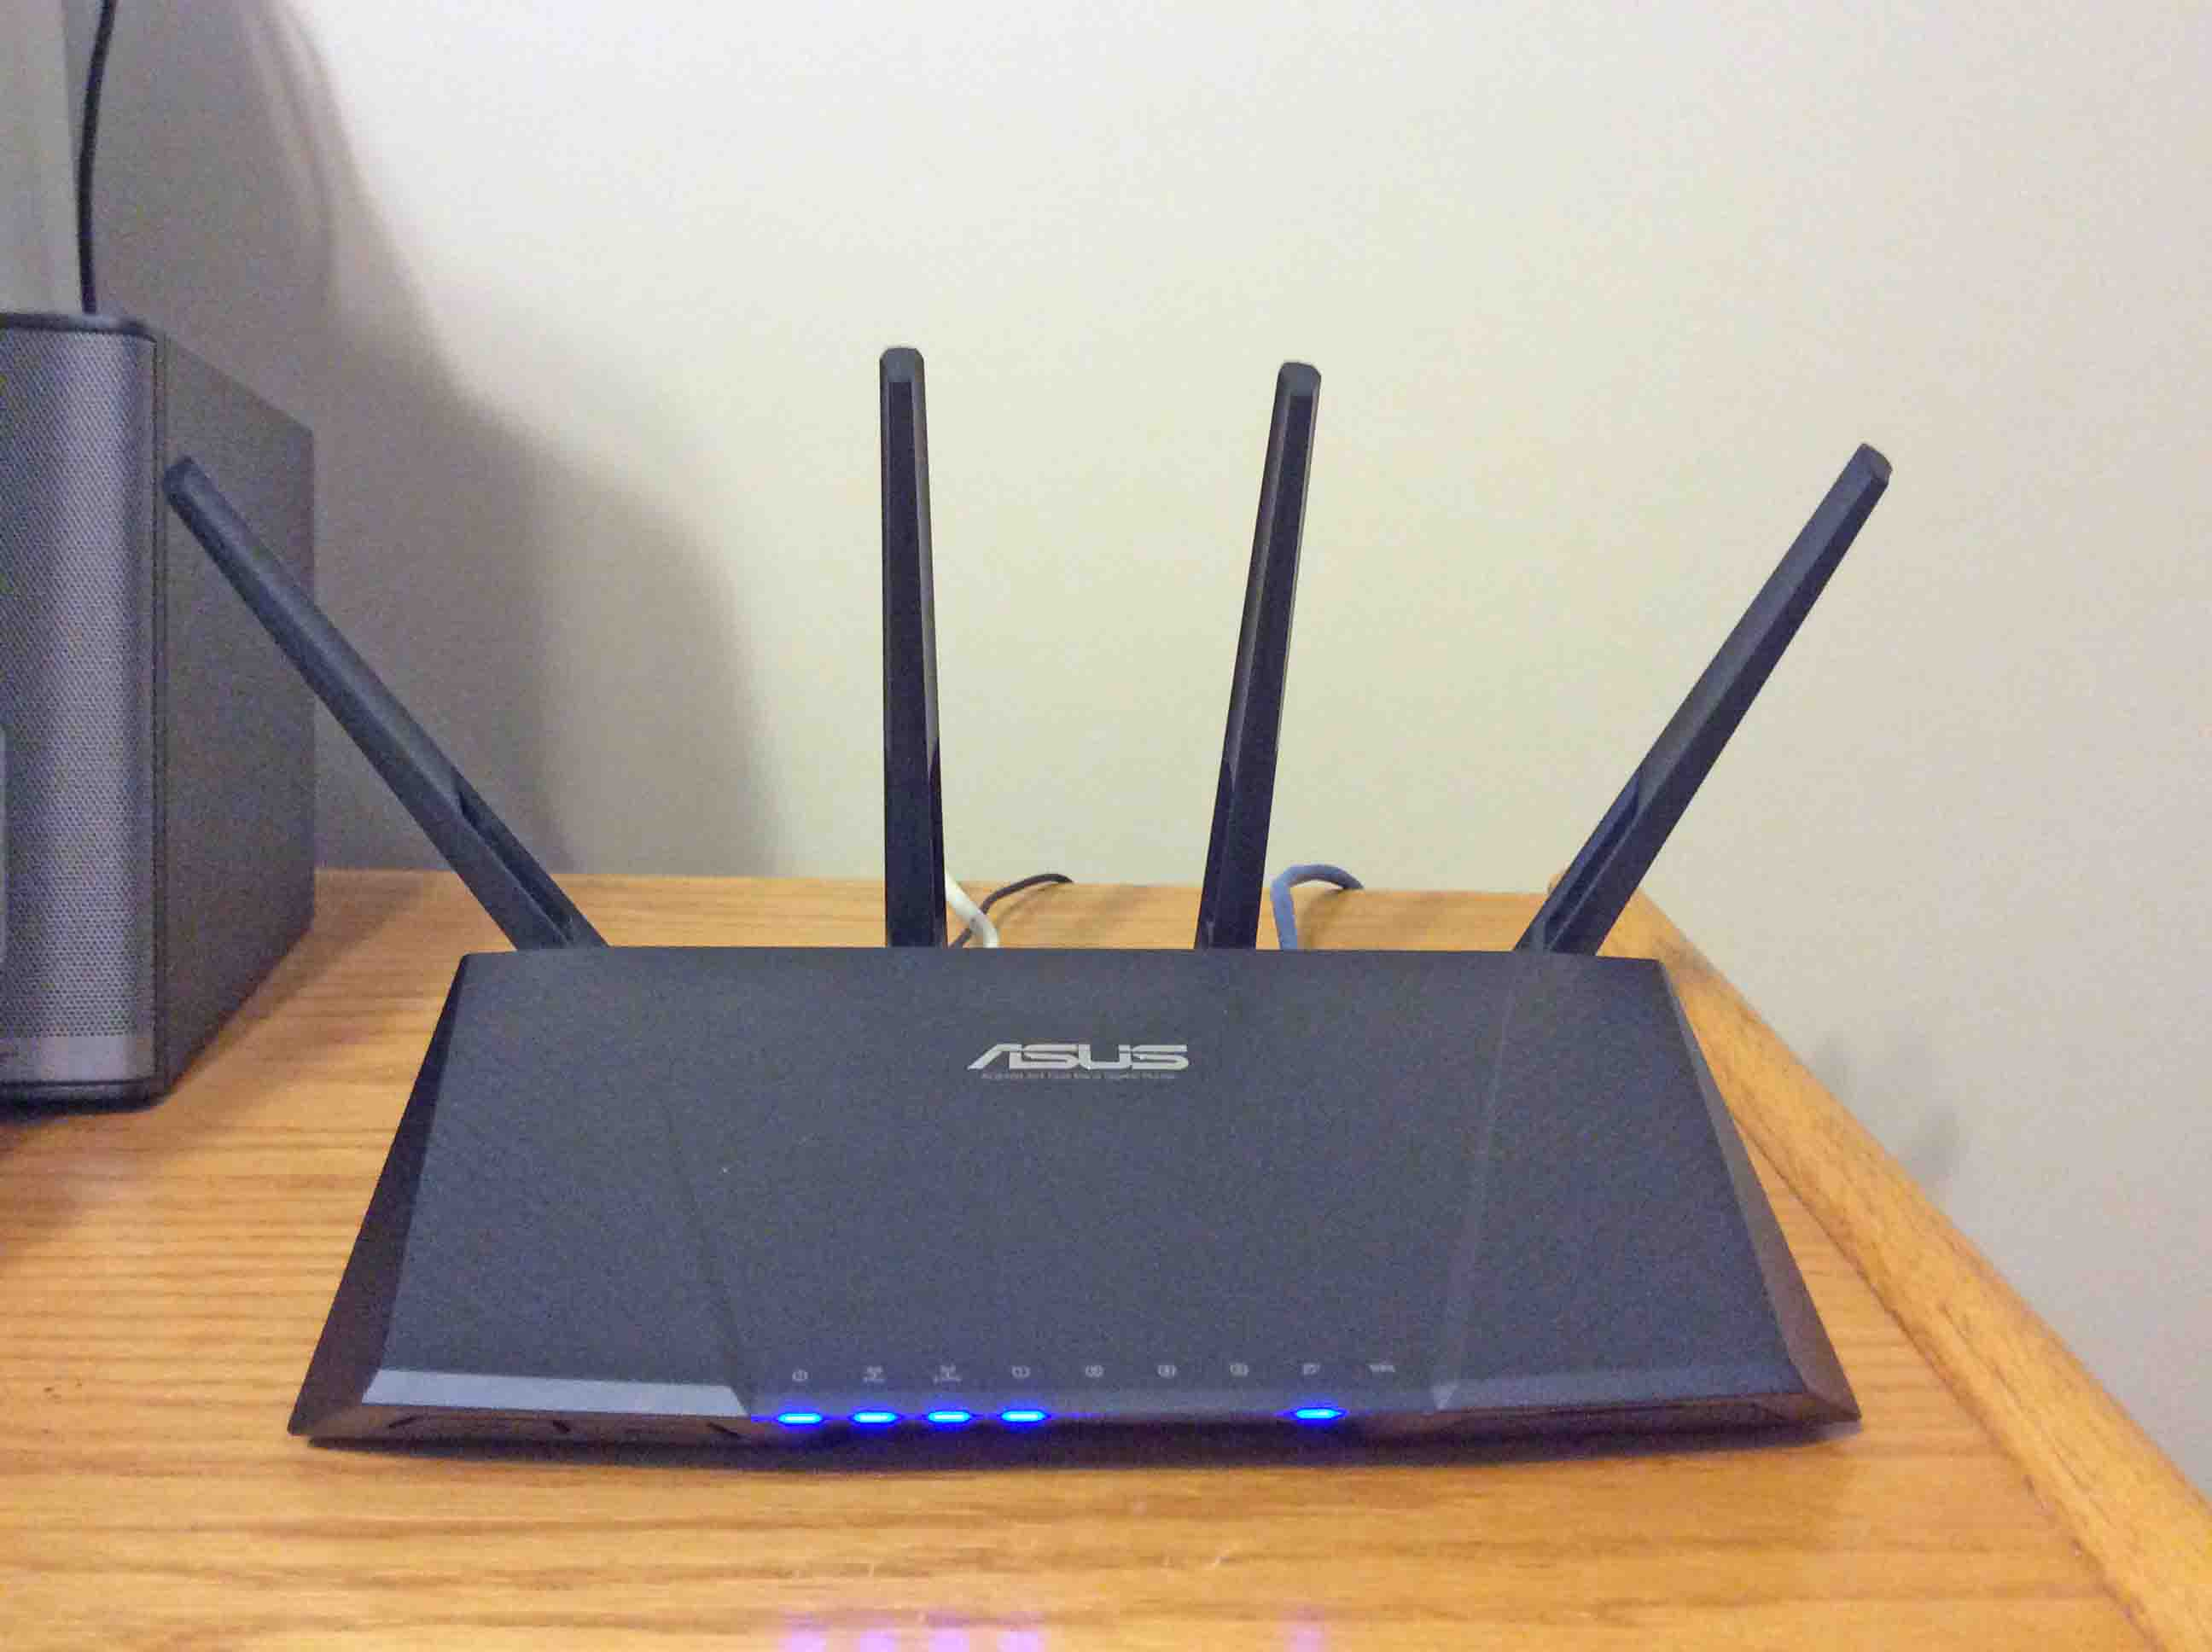 Boost wifi reliability with the asus rt ac87r router toms tek stop picture of the asus rt ac87r wireless router front view installed and operating keyboard keysfo Image collections